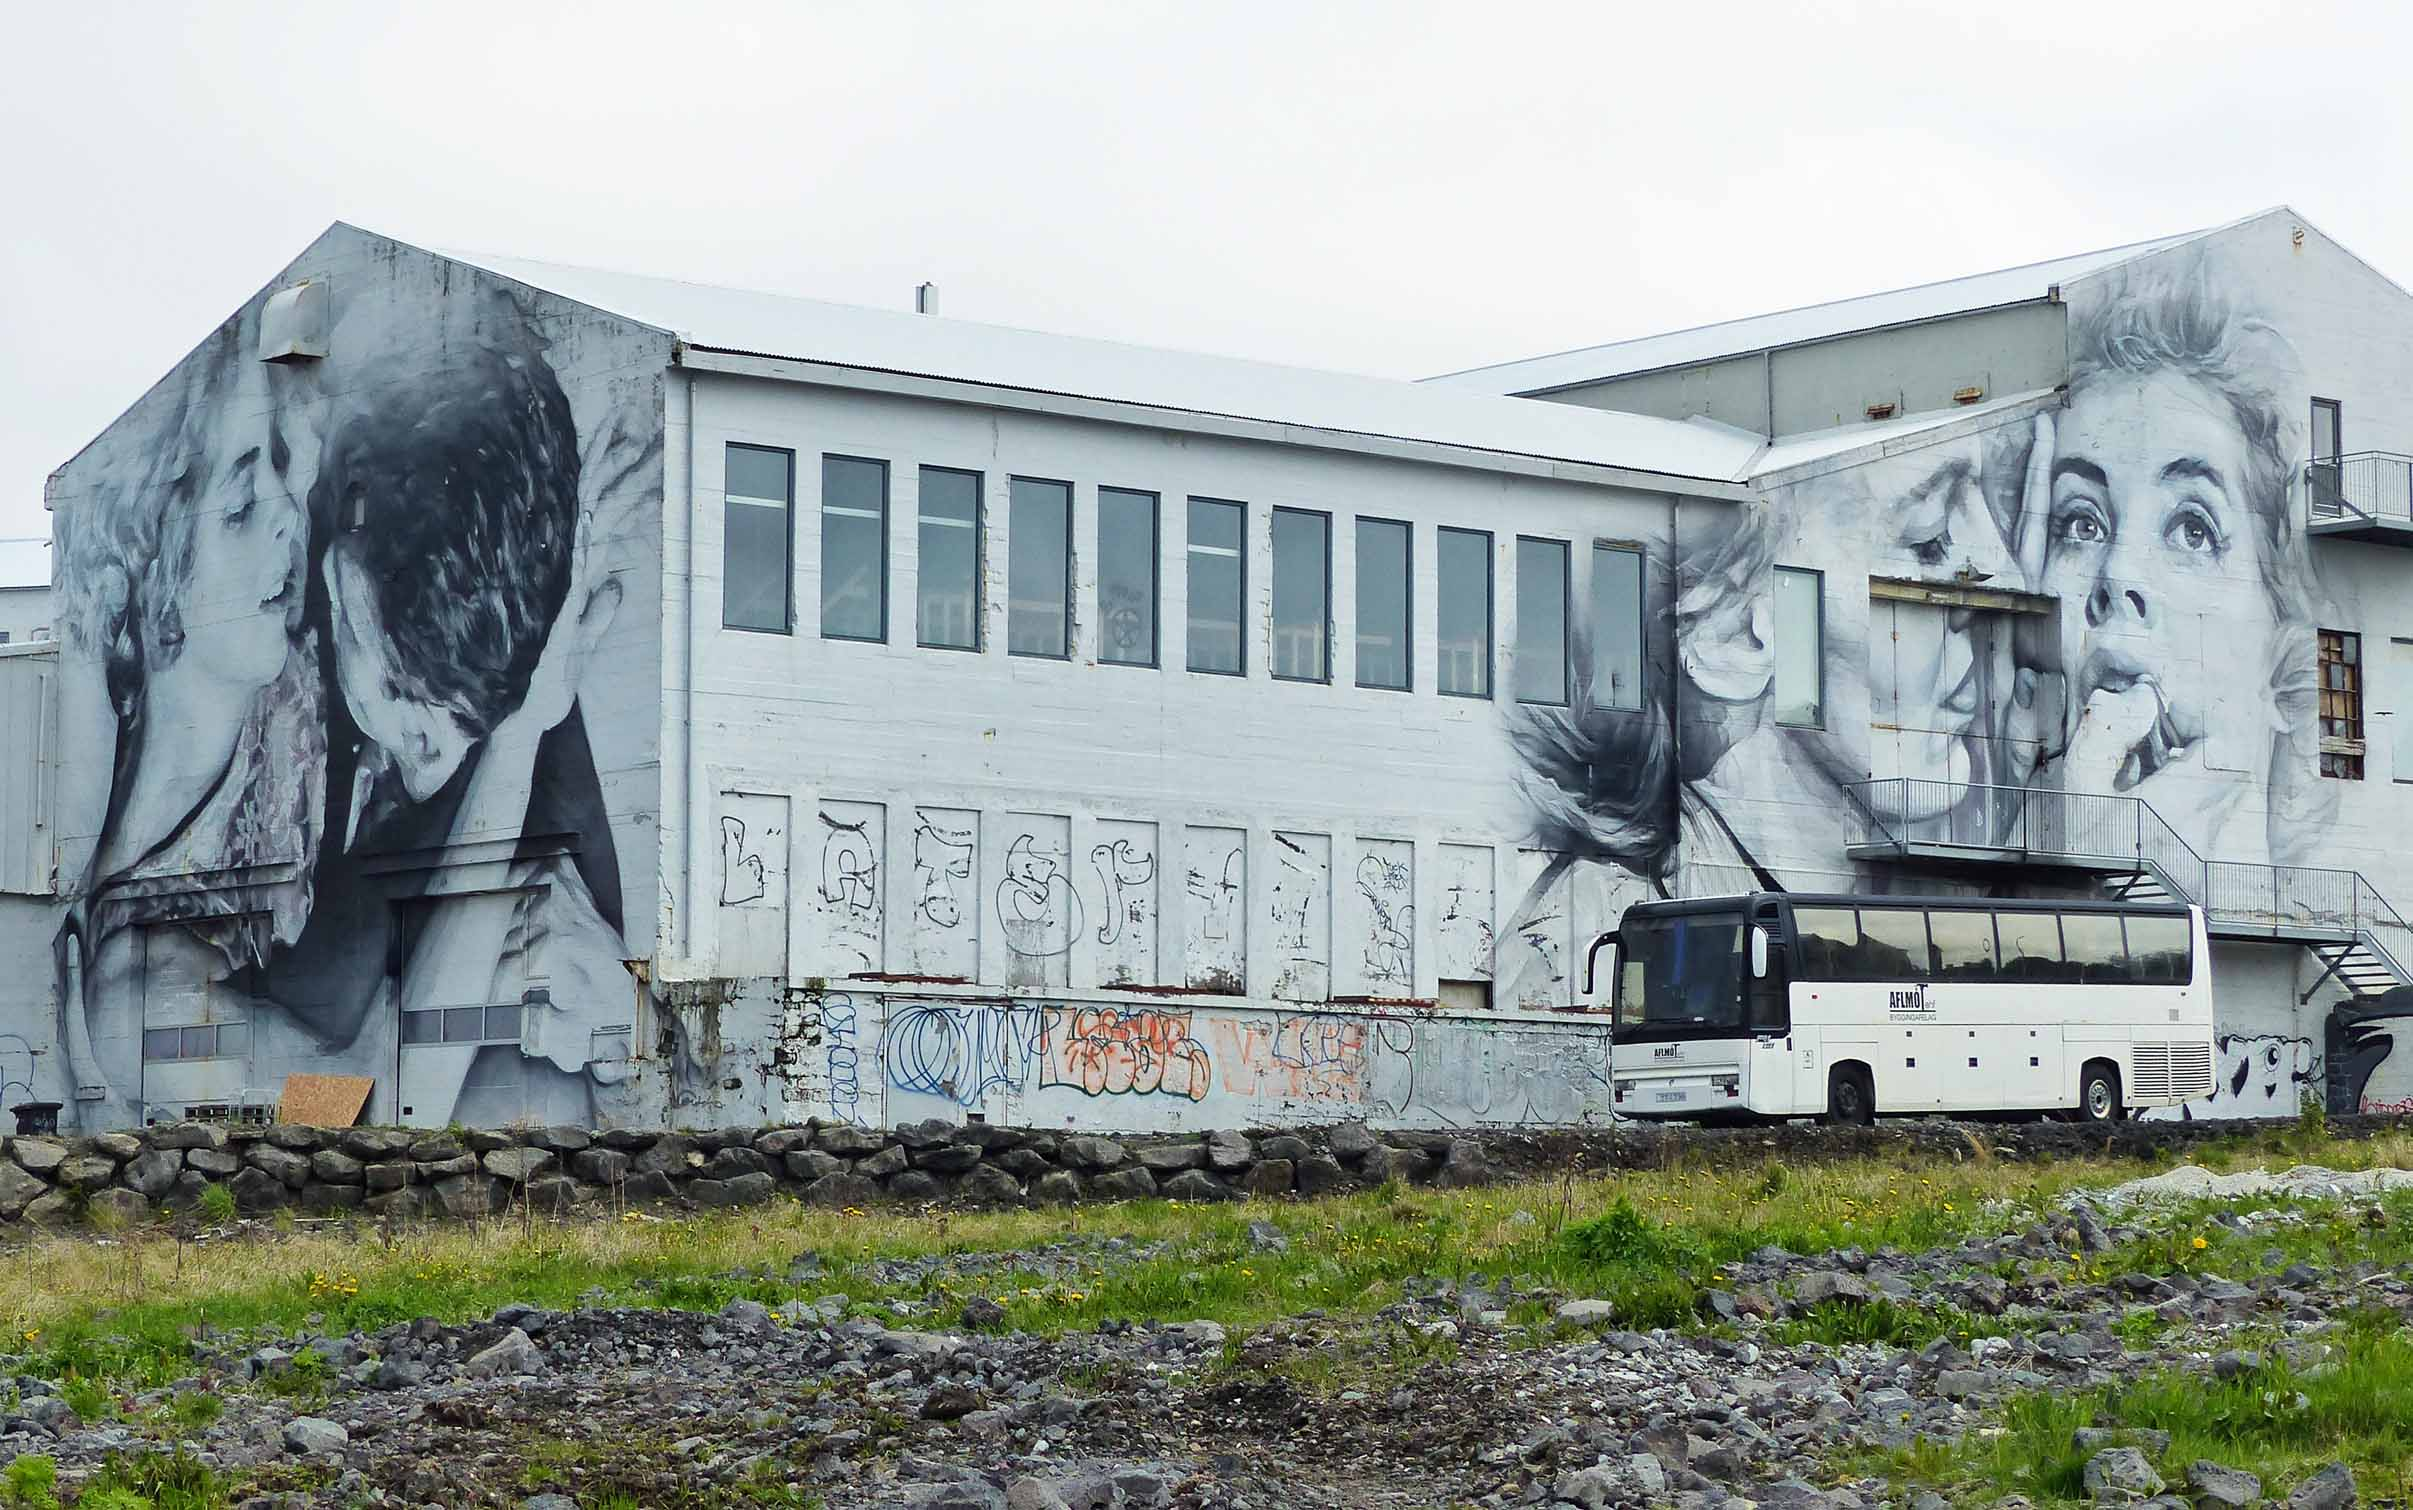 Huge black and white murals on an old building